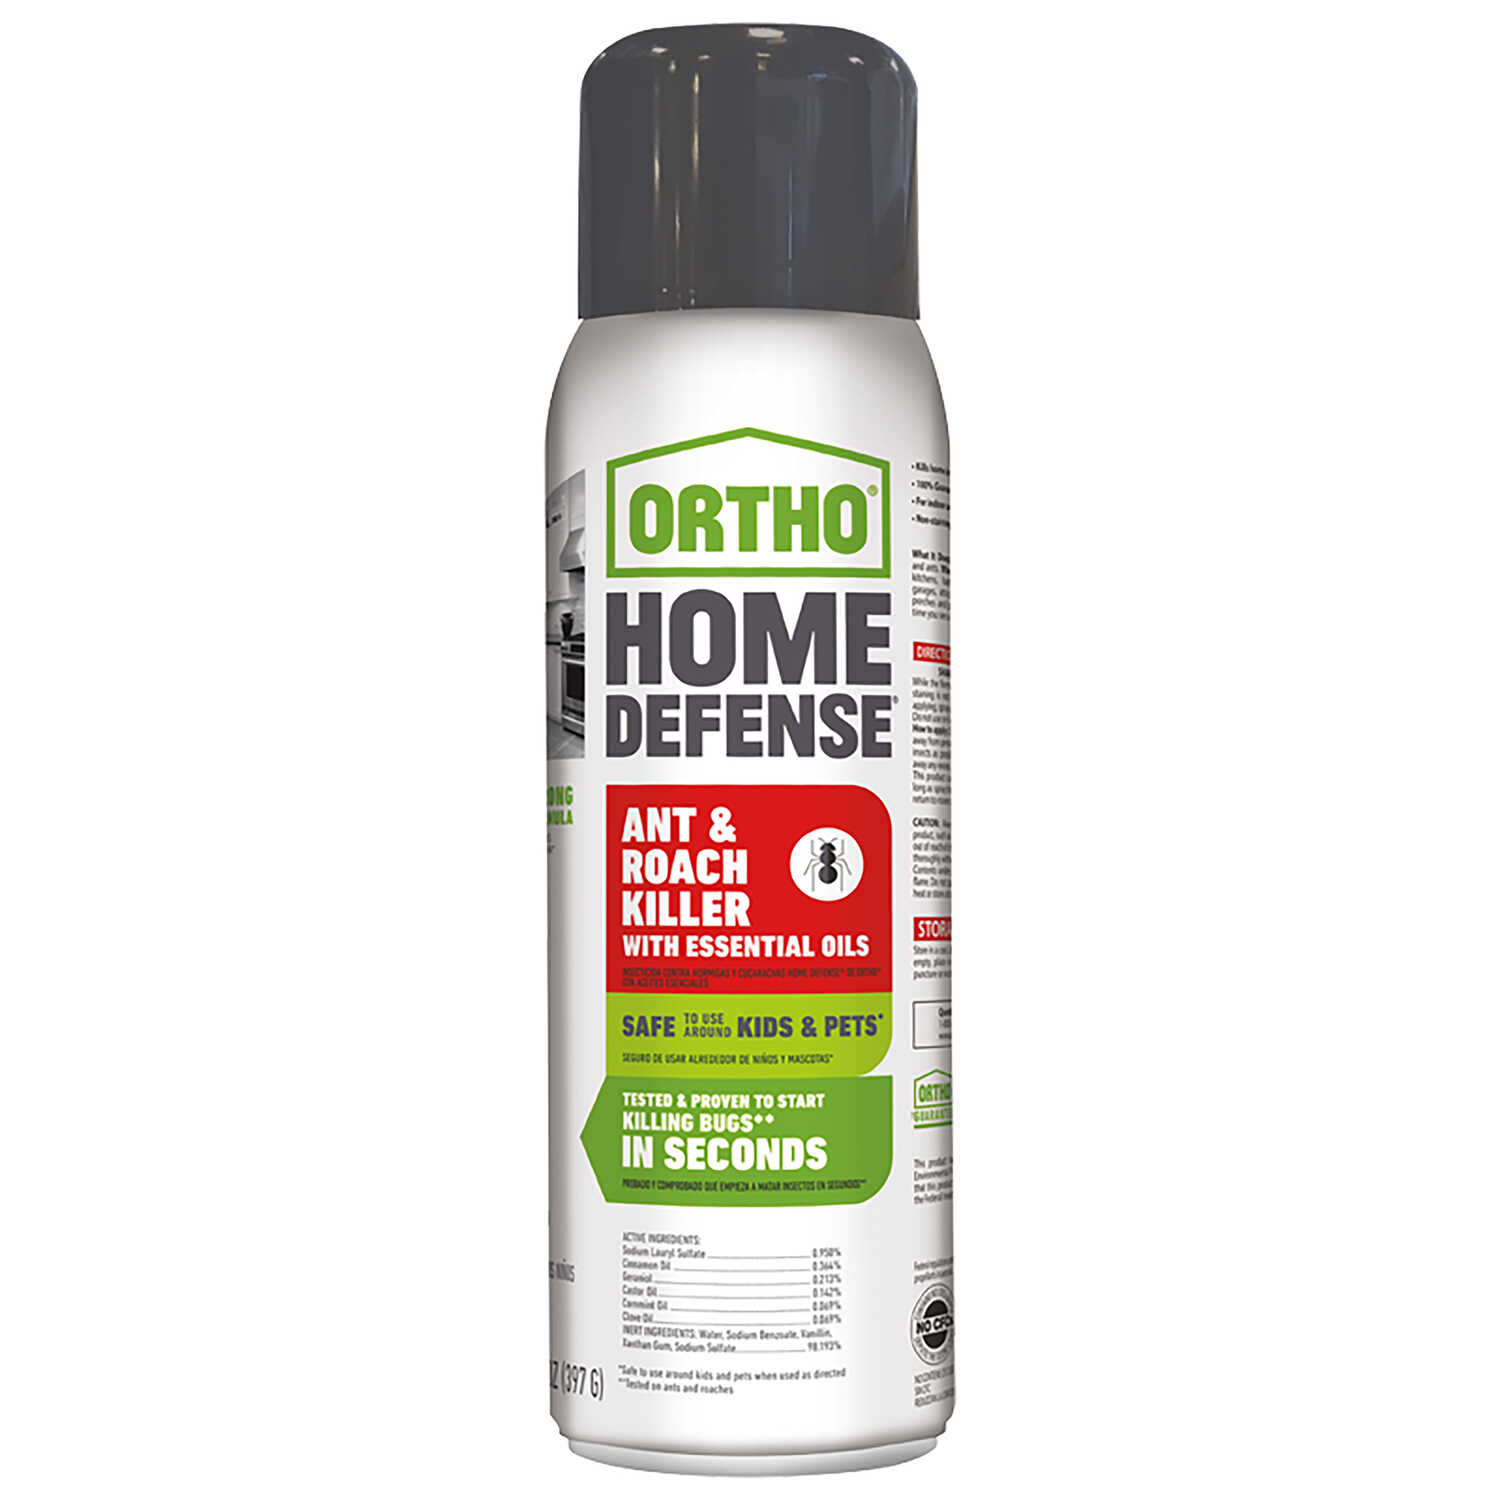 Ortho Home Defense Ant And Roach Killer 14 Oz.